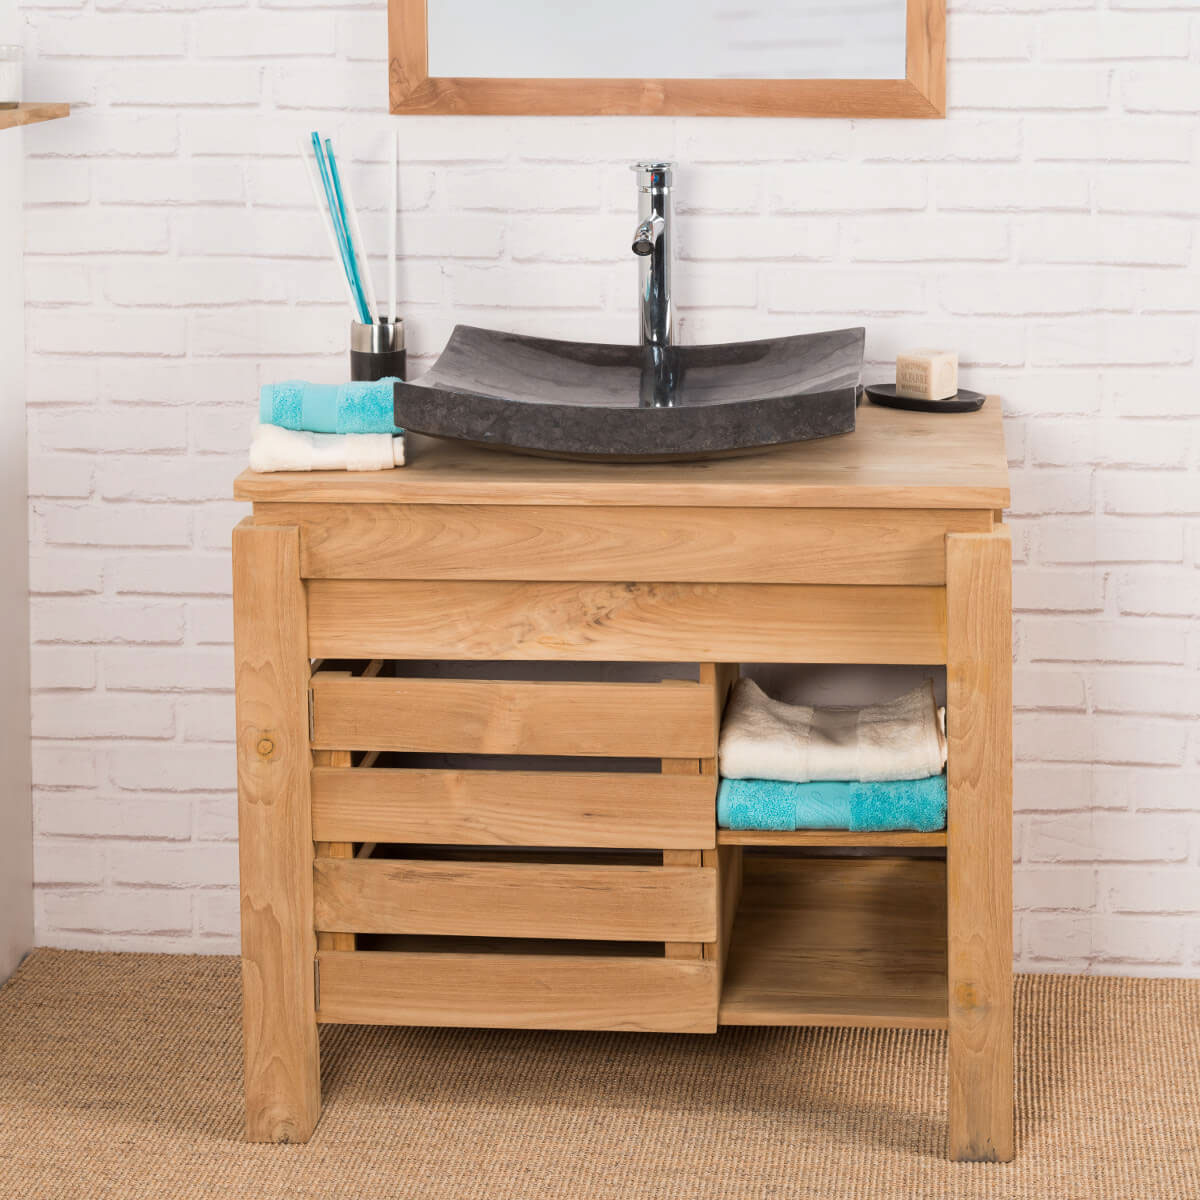 Meuble sous vasque simple vasque en bois teck massif zen rectangle naturel l 85 cm - Salle de bain rustique contemporain ...